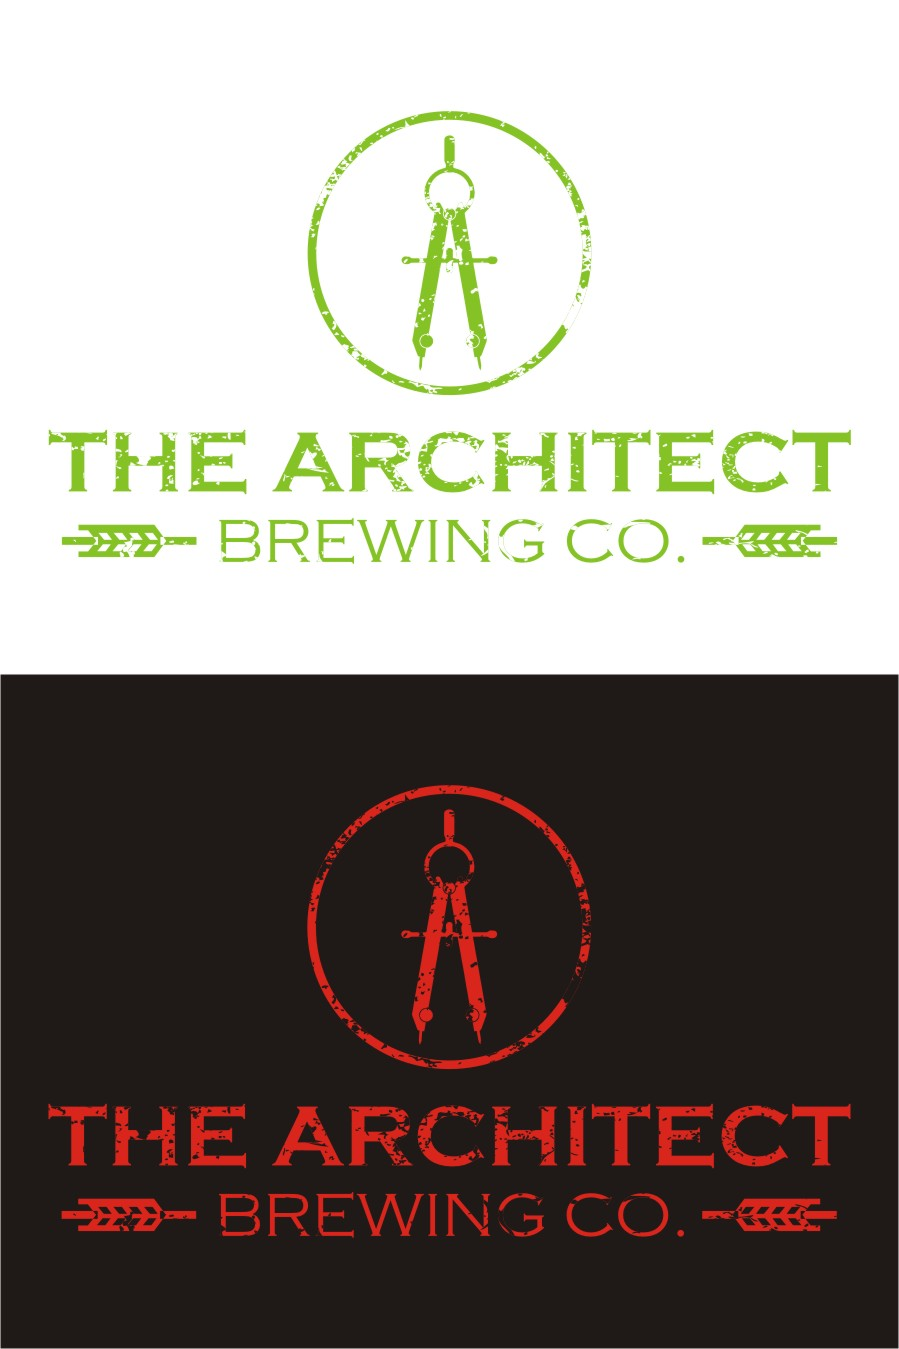 Logo Design by Spider Graphics - Entry No. 77 in the Logo Design Contest Captivating Logo Design for The Architect Brewing Co..